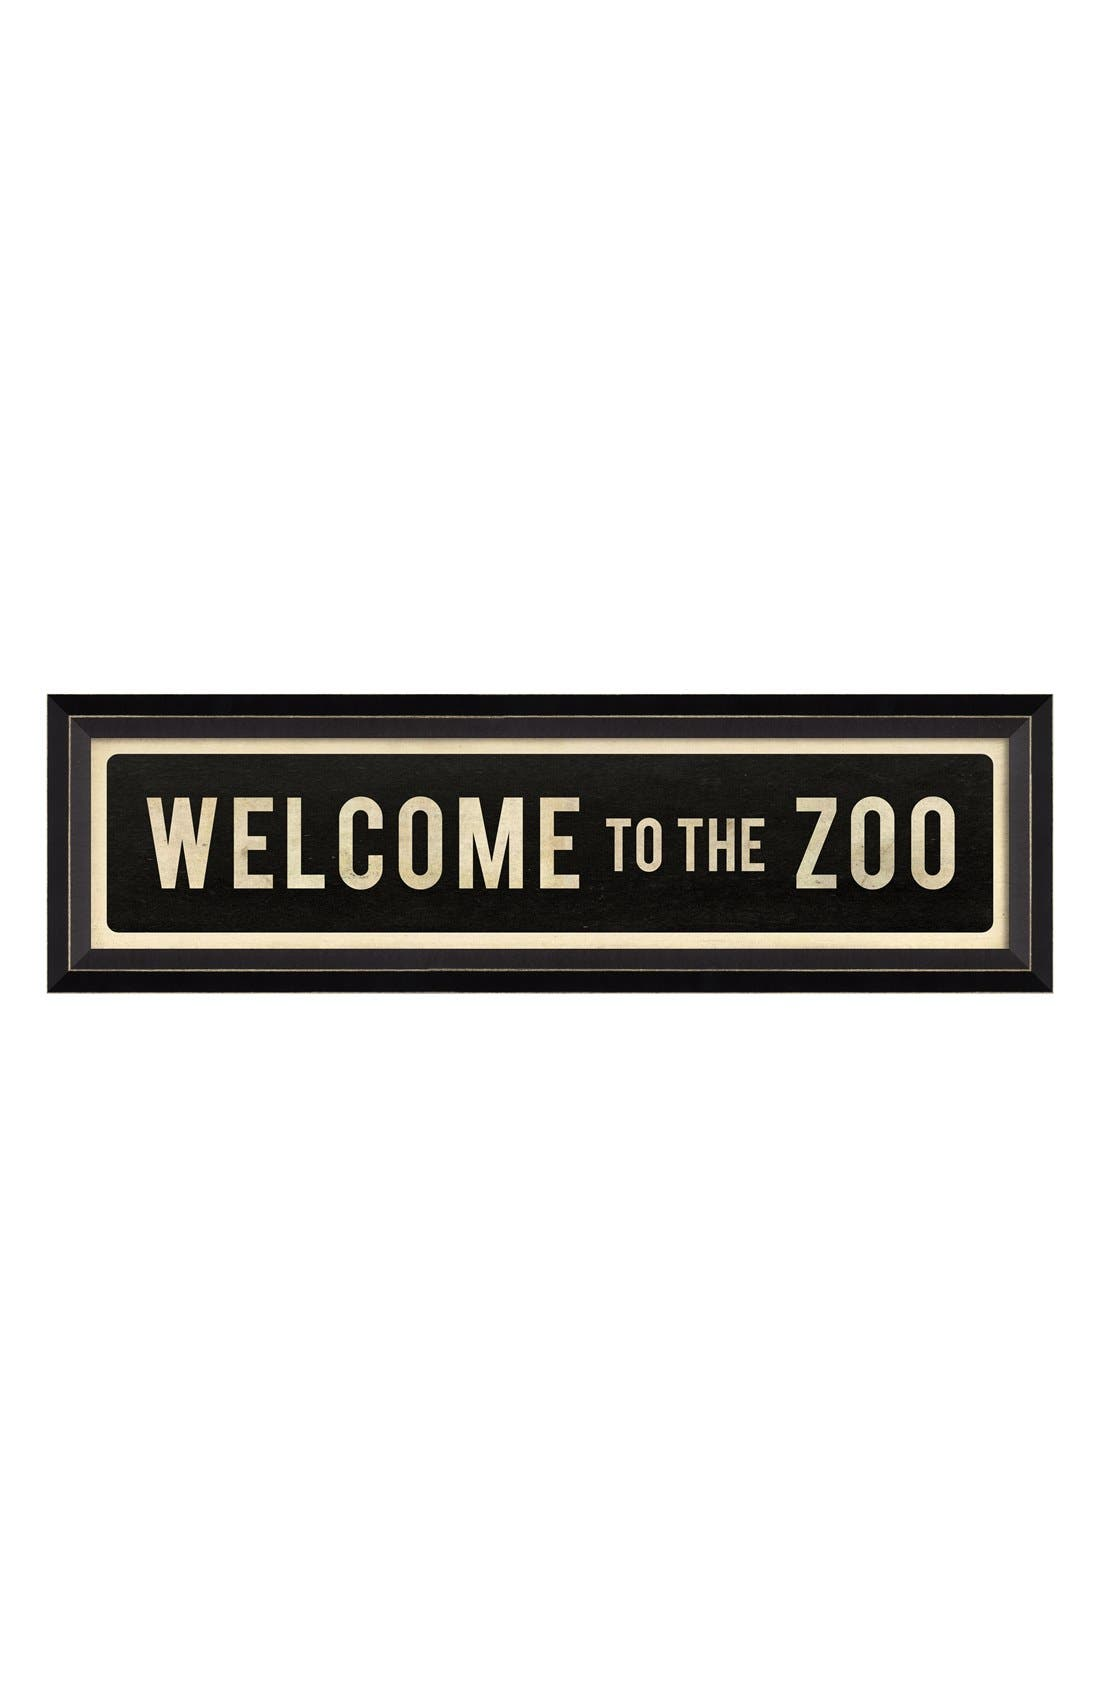 'Welcome to the Zoo' Vintage Look Street Sign Artwork,                             Main thumbnail 1, color,                             001